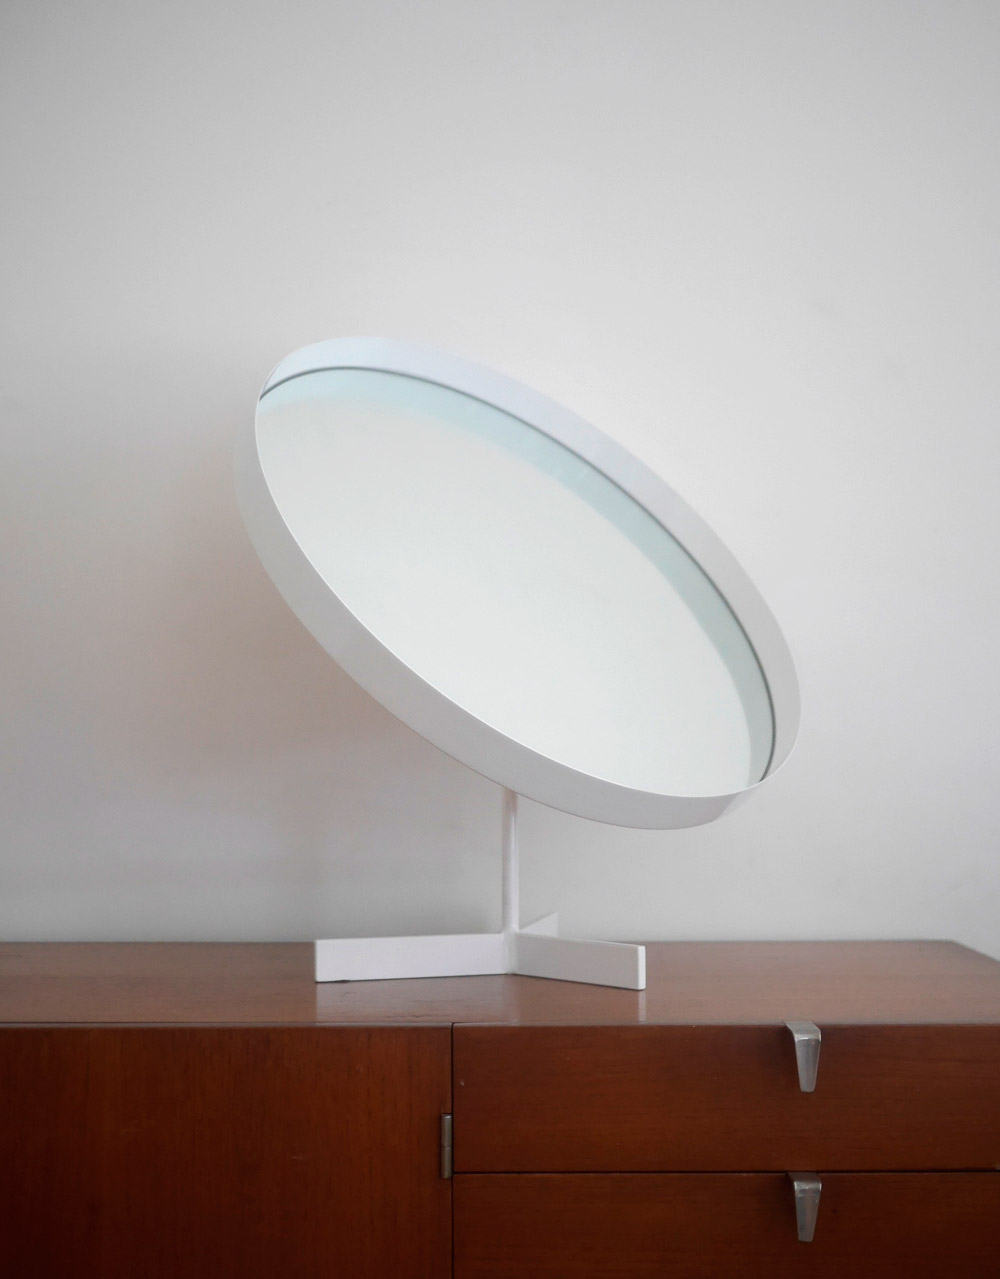 P1960s mirror by Durlston Designs